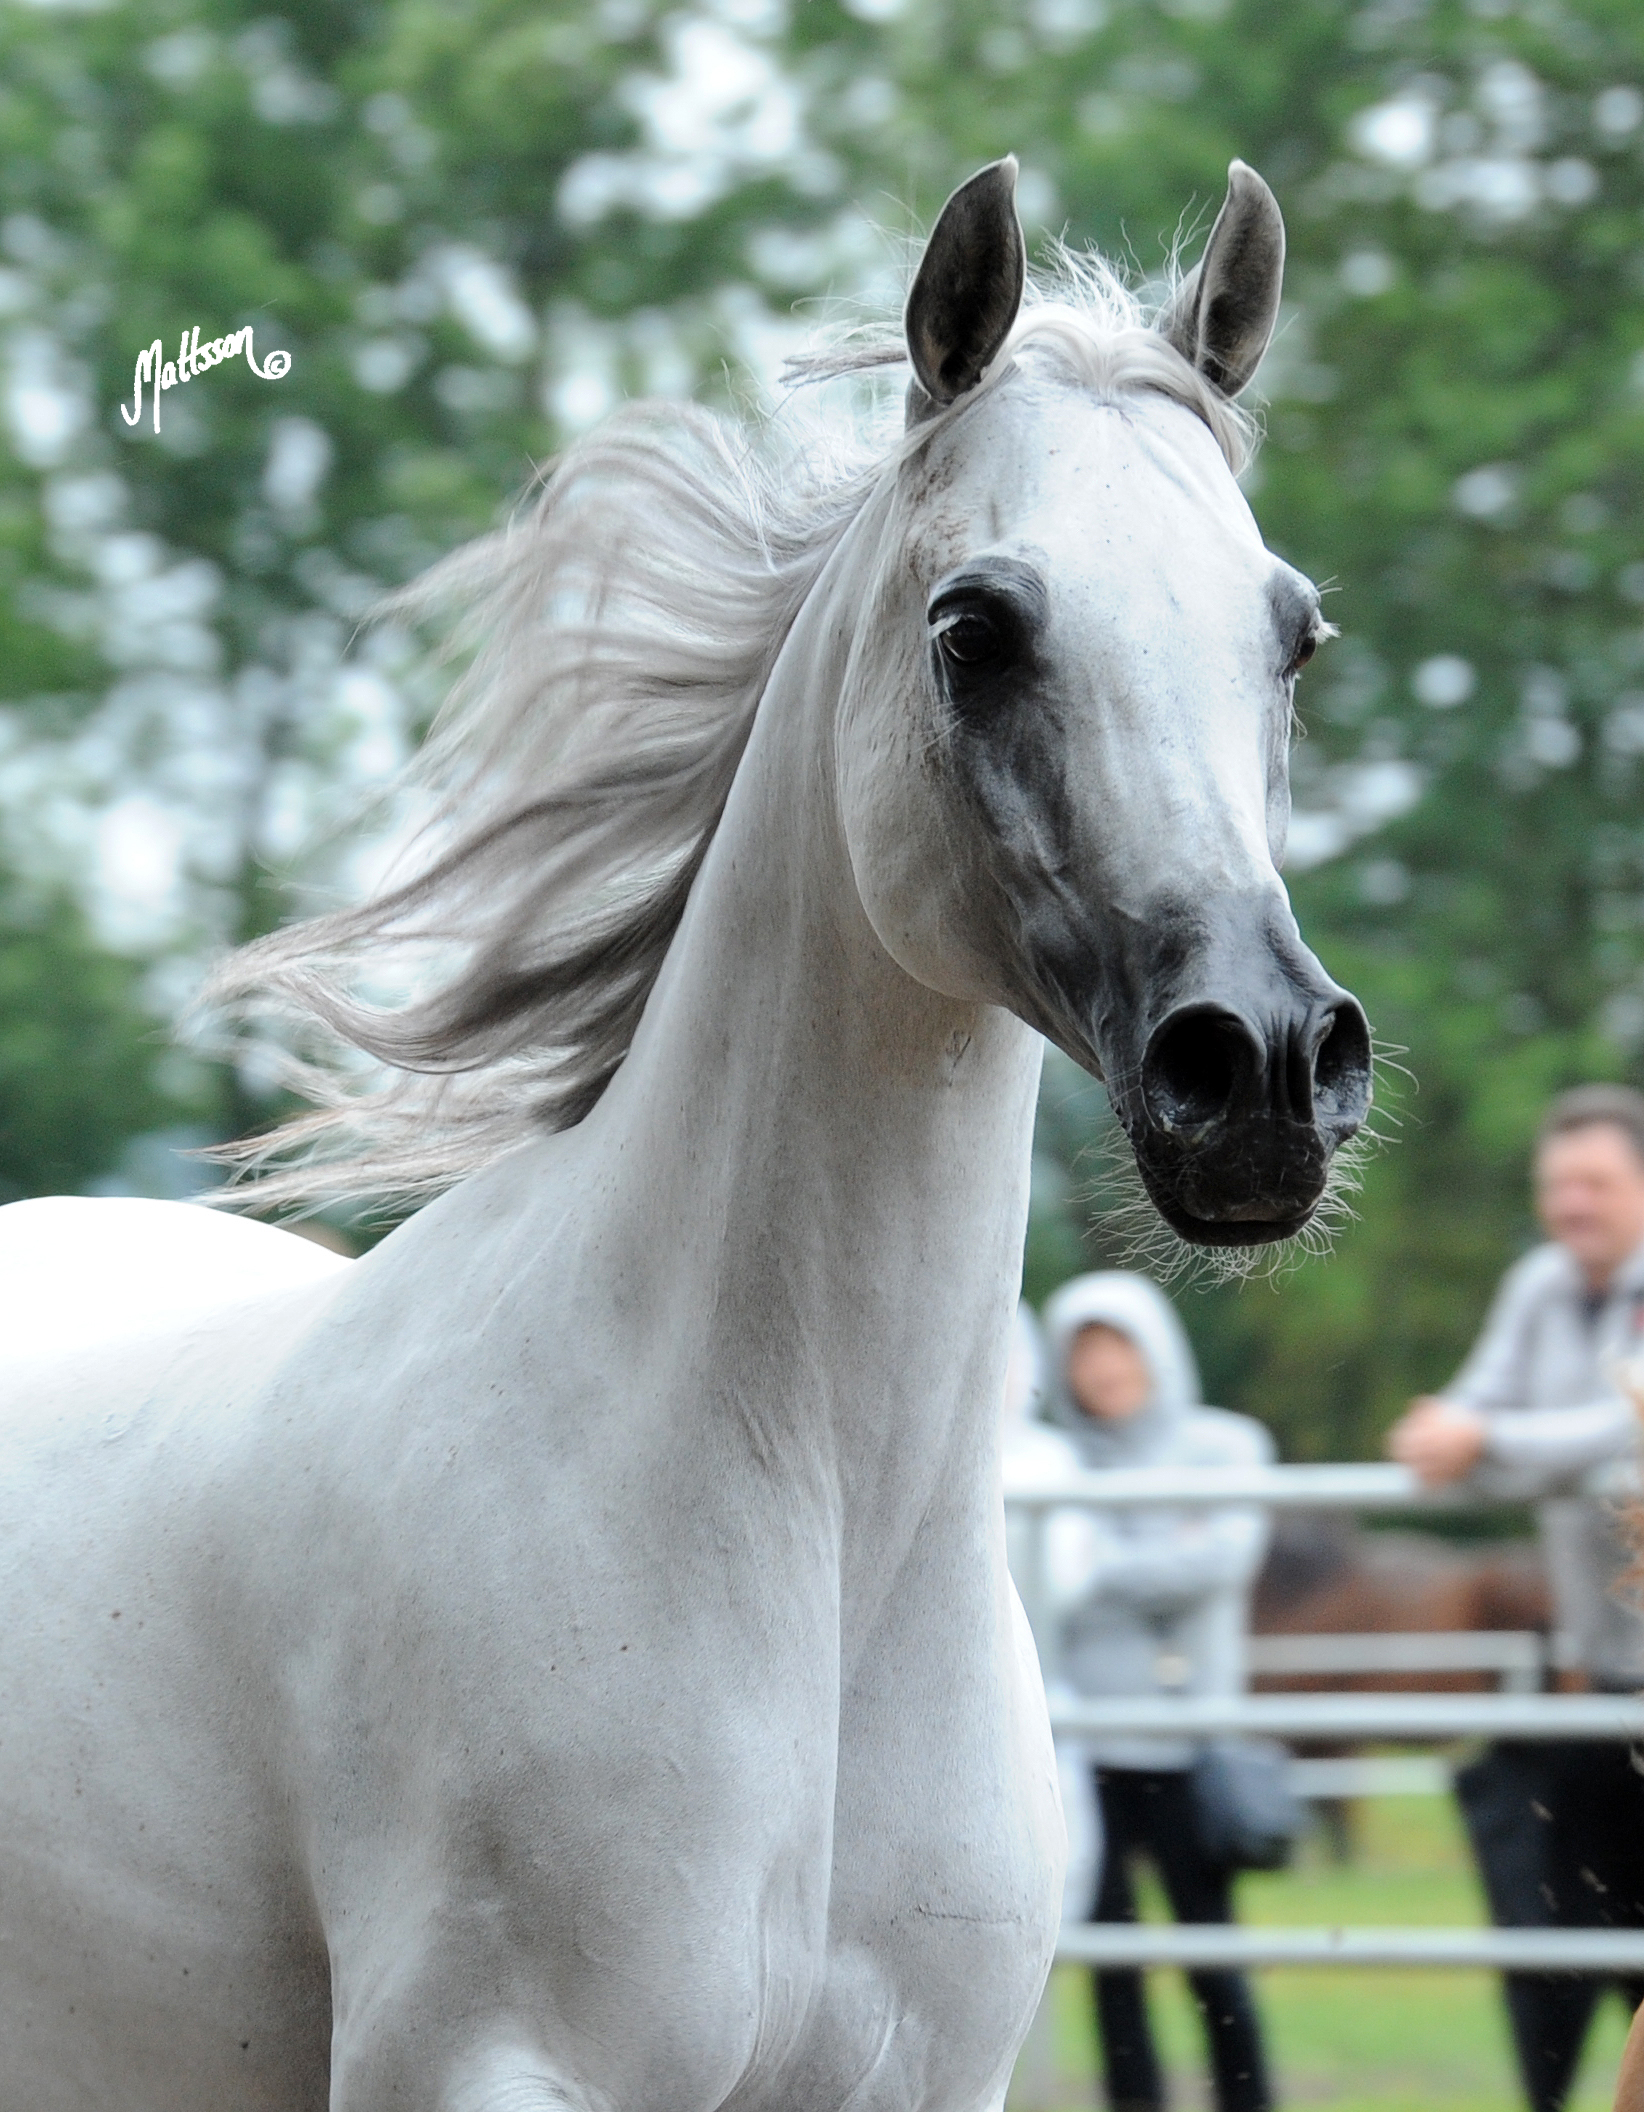 Palmeta at the 2012 Janów Podlaski Breeding Parade - the day after she was named Polish National Champion Mare and Best in Show